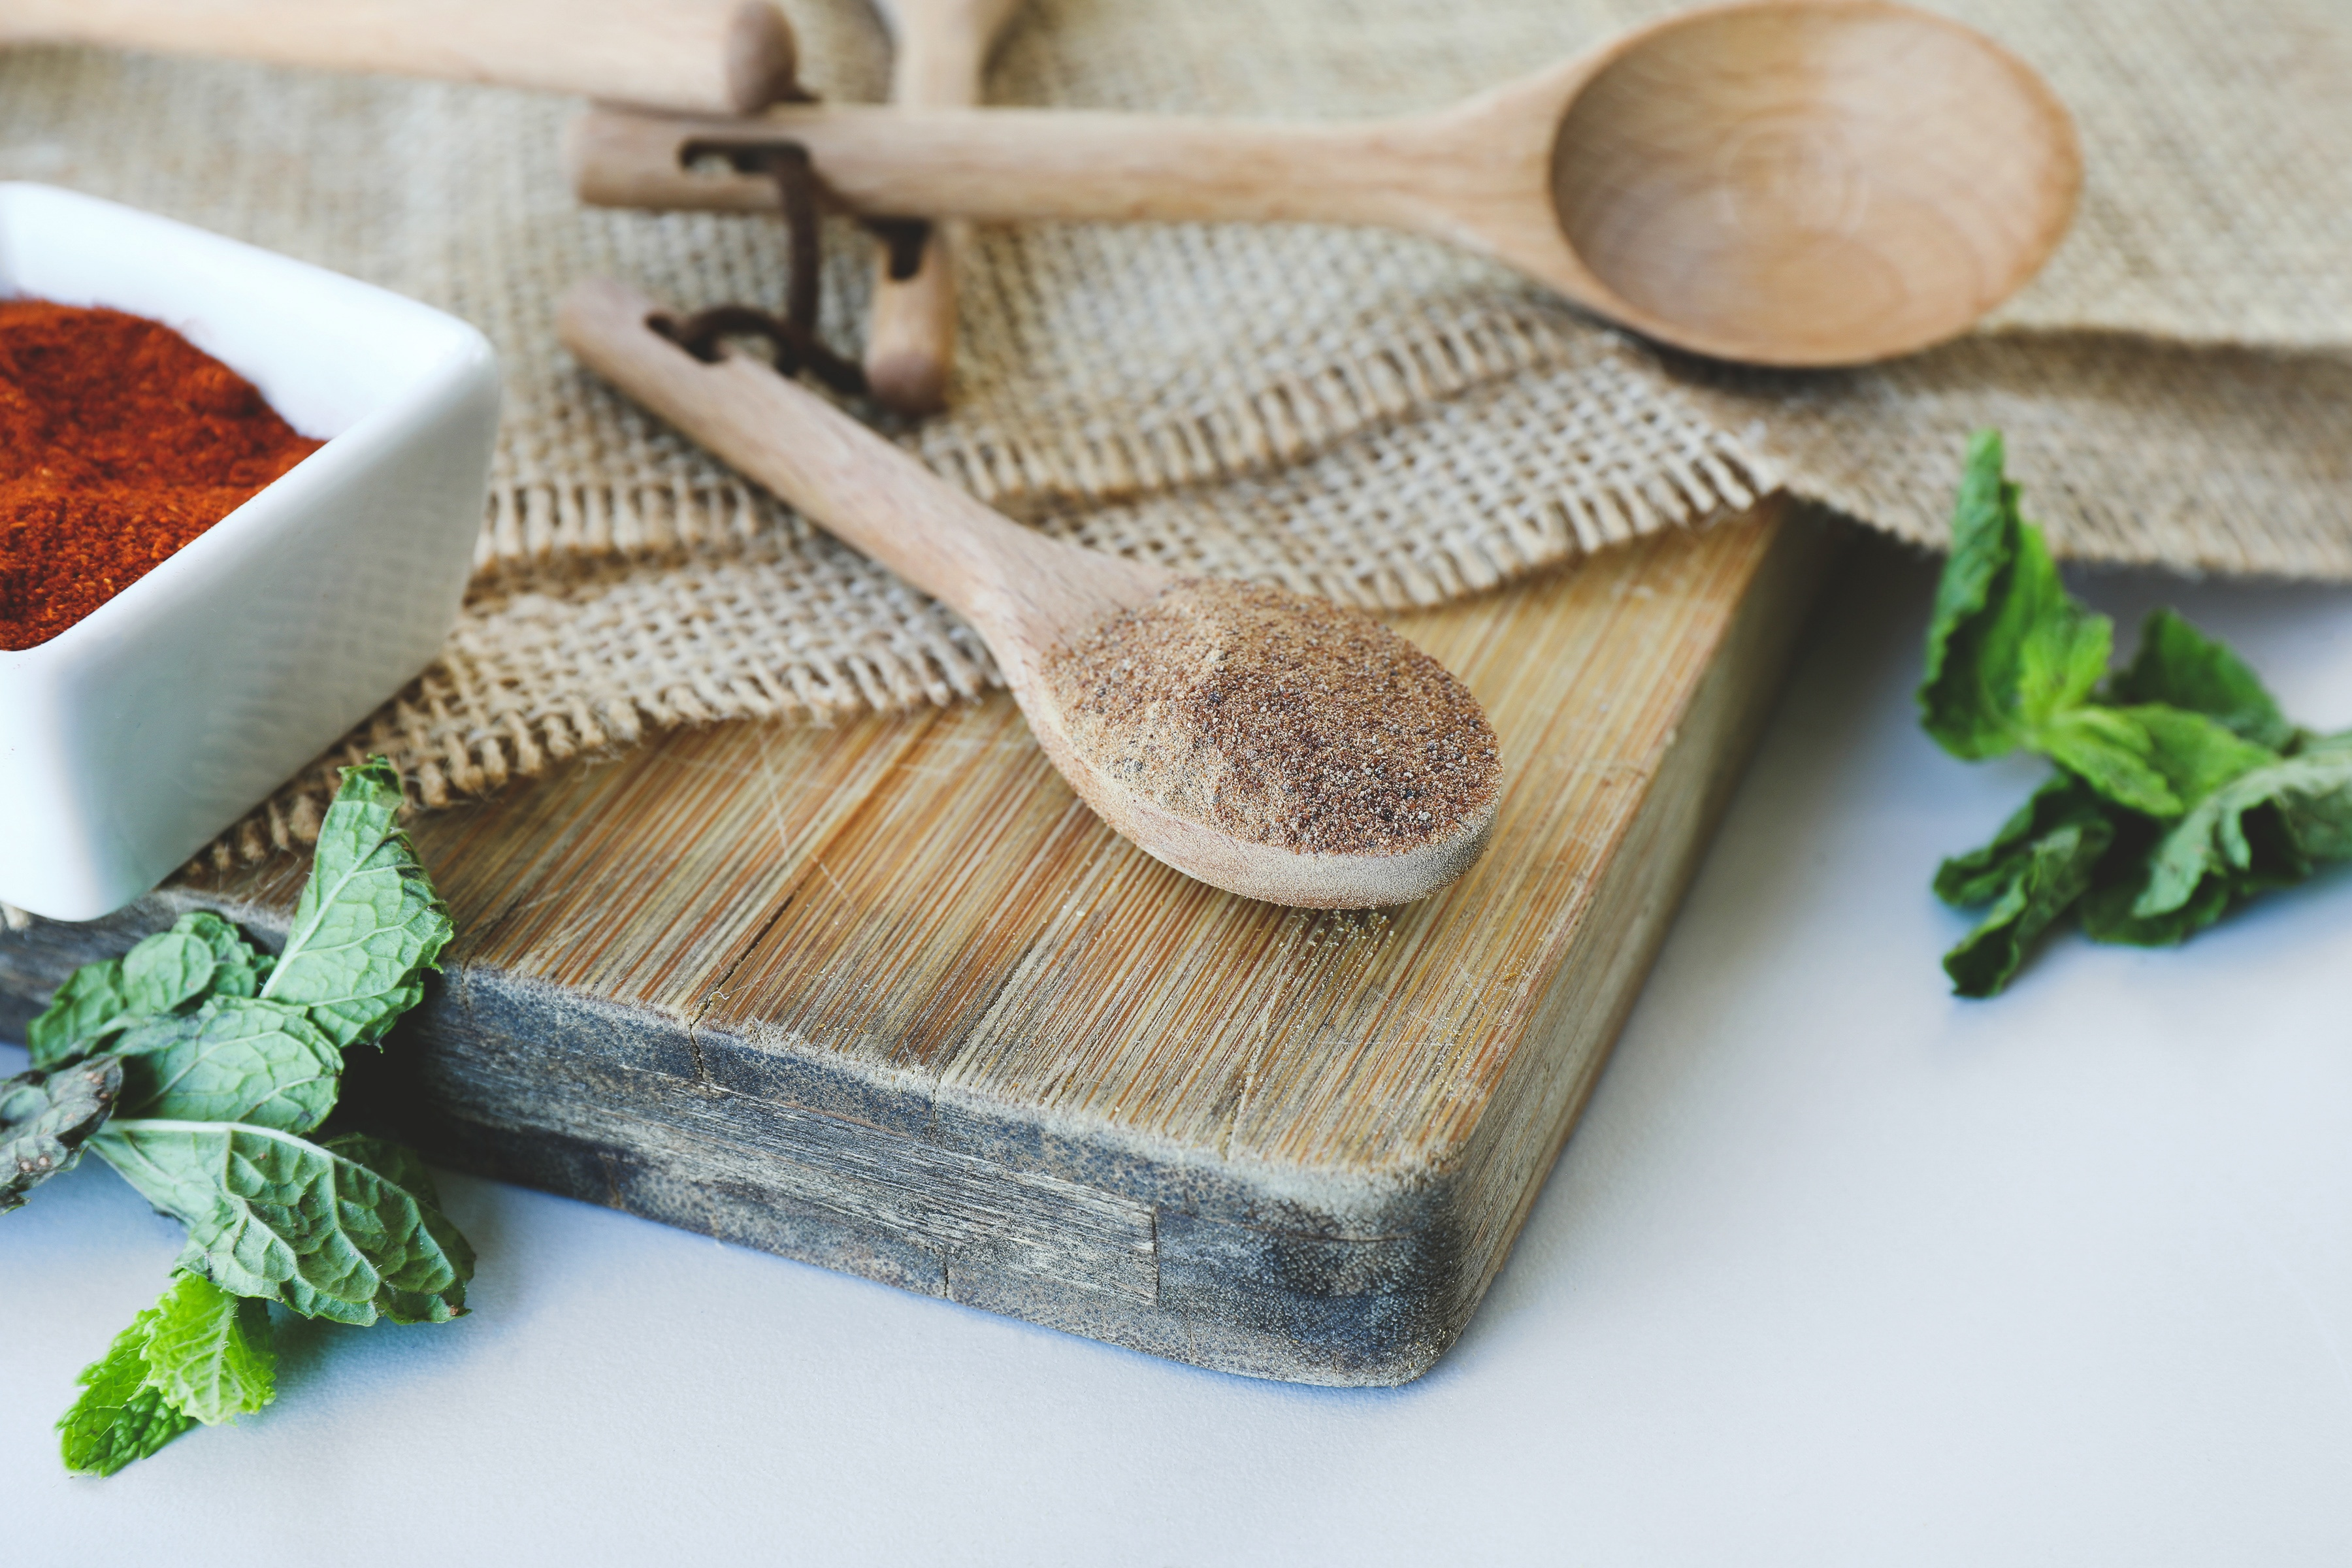 Wooden spoon filled with amla powder and other herbs on cutting board